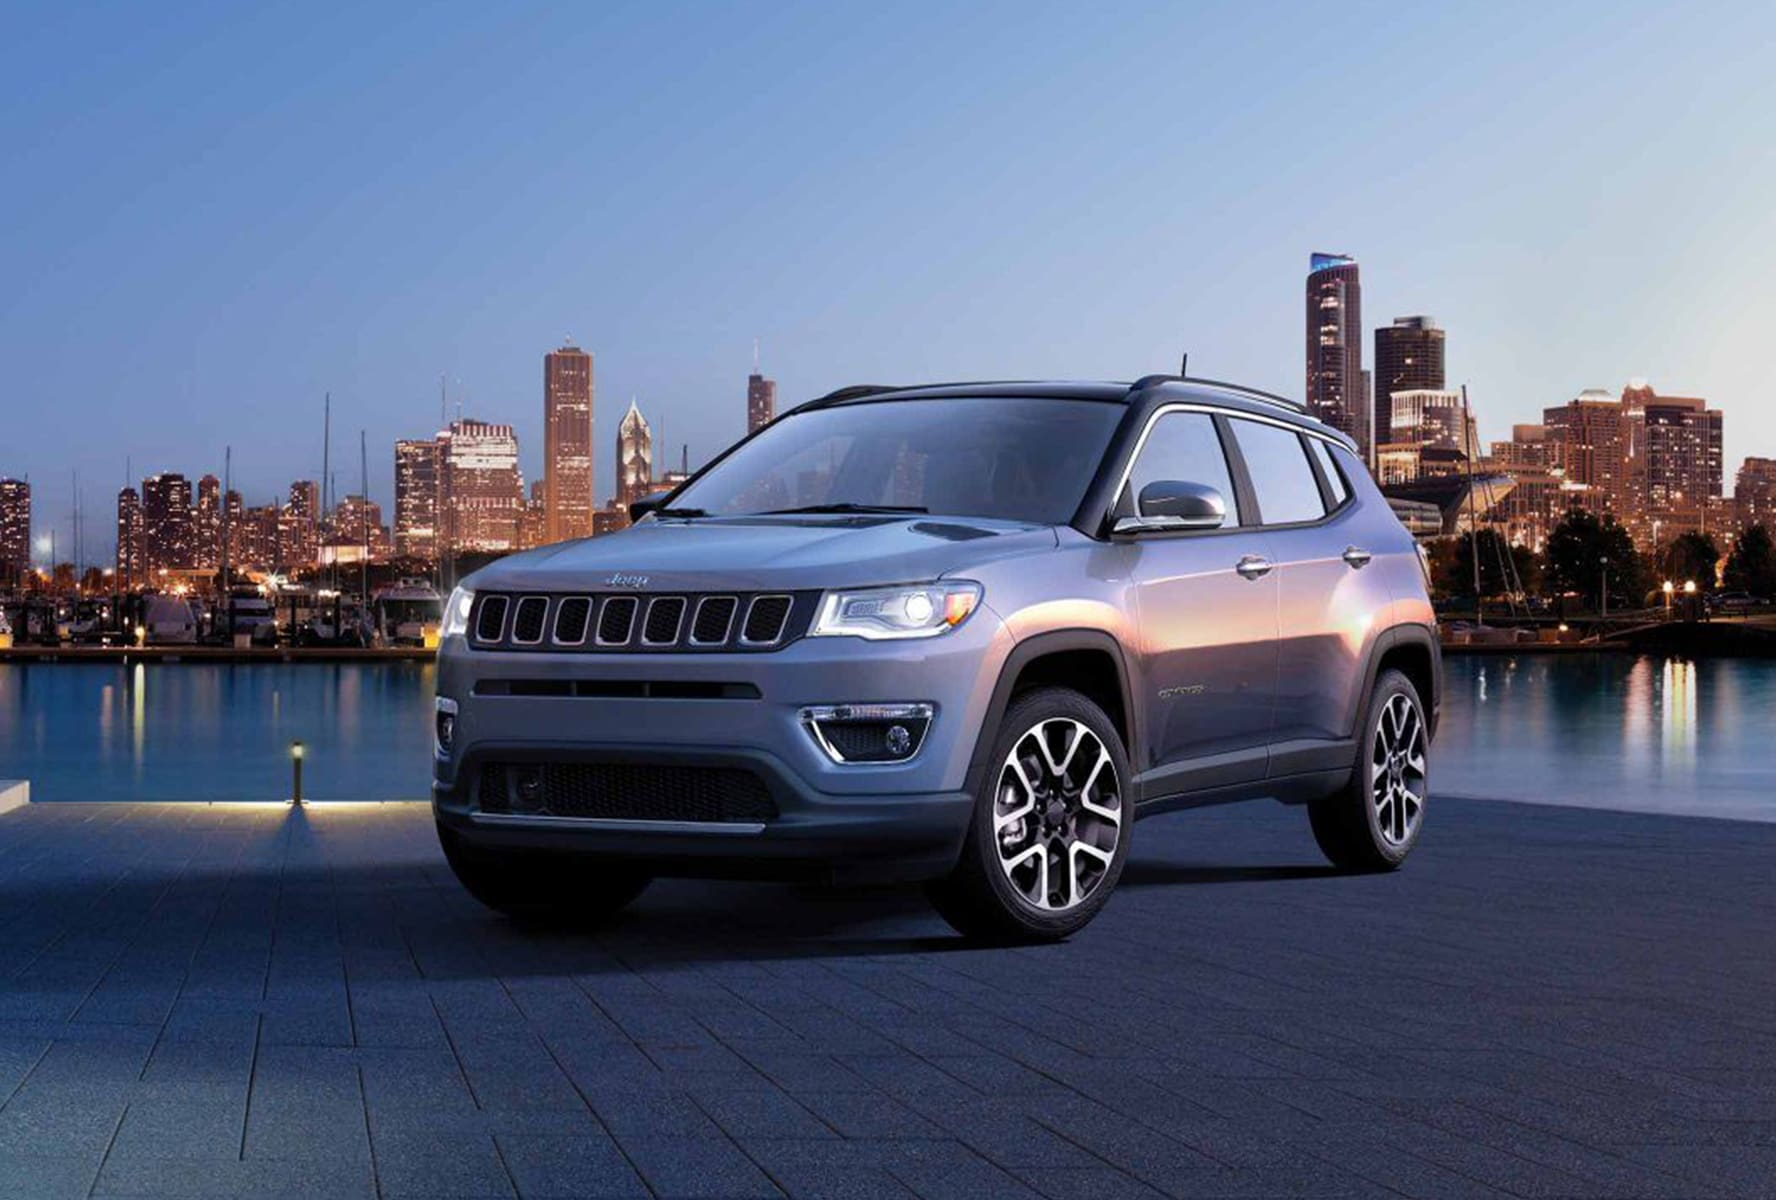 2019 Jeep Compass safety near Cincinnati, OH